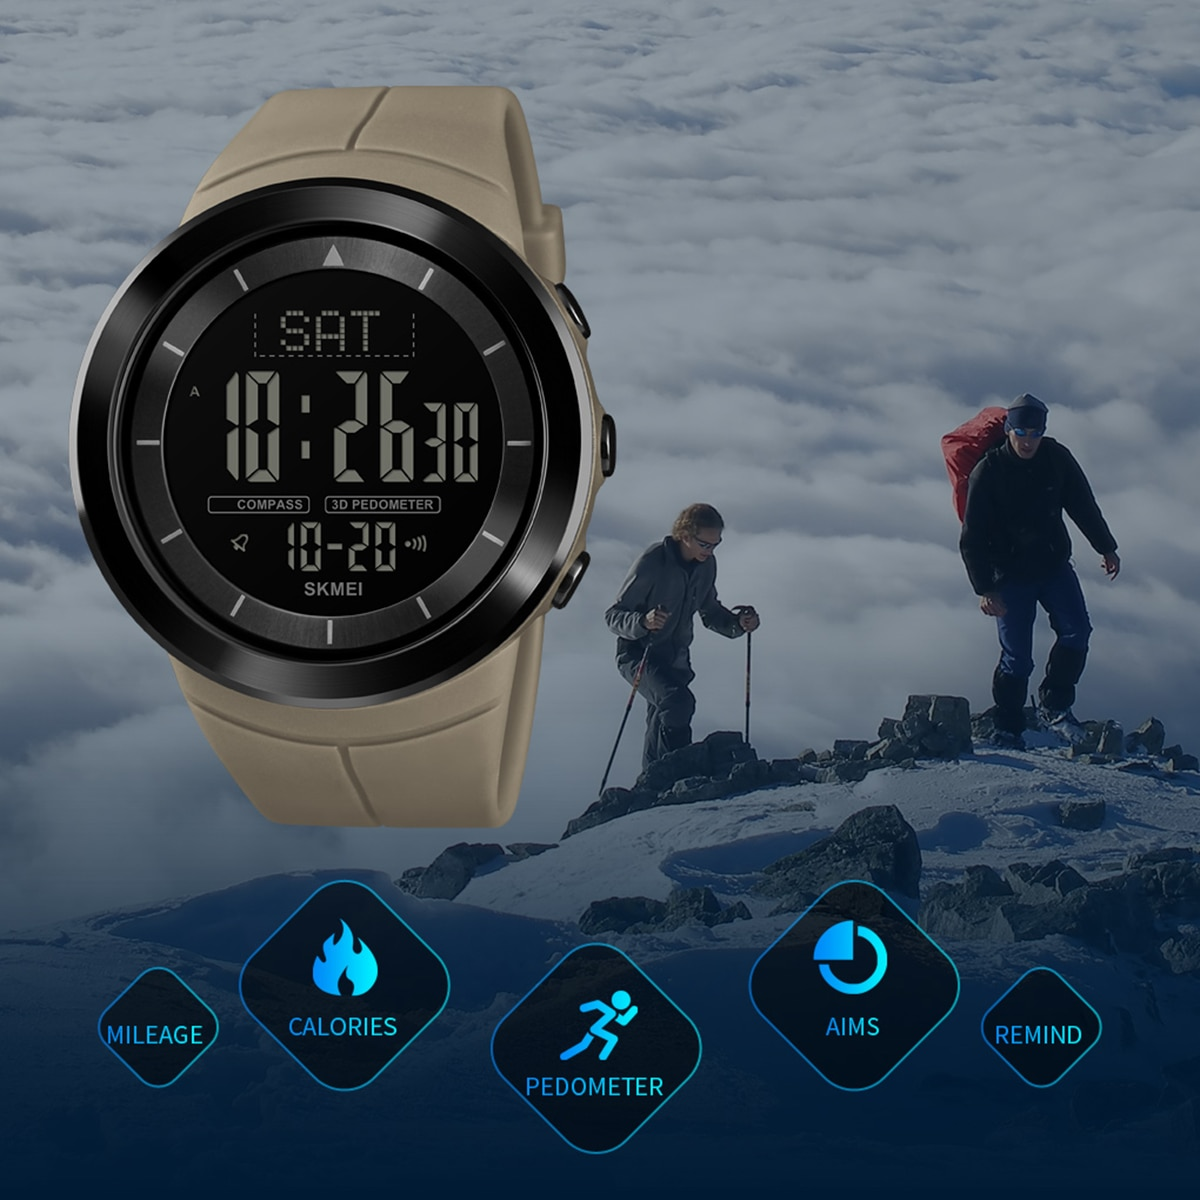 Outdoor 50M Waterproof Sports Watch Digital EL backlight Compass Pedometer Calorie Wrist Watch for Running Hiking Camping